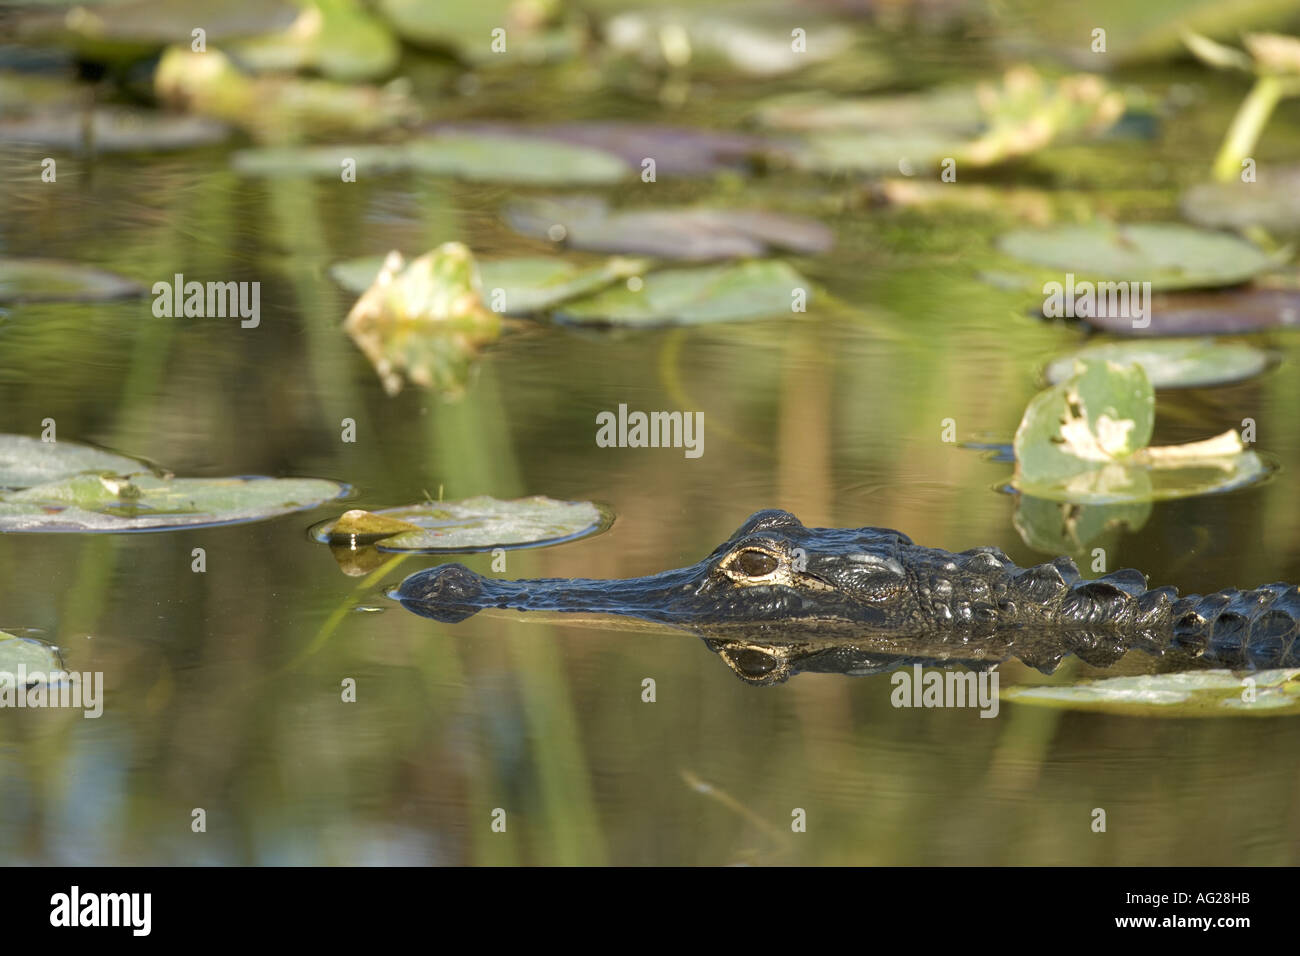 zoology / animals, reptile, Alligatoridae, American Alligator(Alligator mississippiensis), swimming in water, detail: head, Everglades, national park, Florida, USA, distribution: southern states of North America, Additional-Rights-Clearance-Info-Not-Available - Stock Image